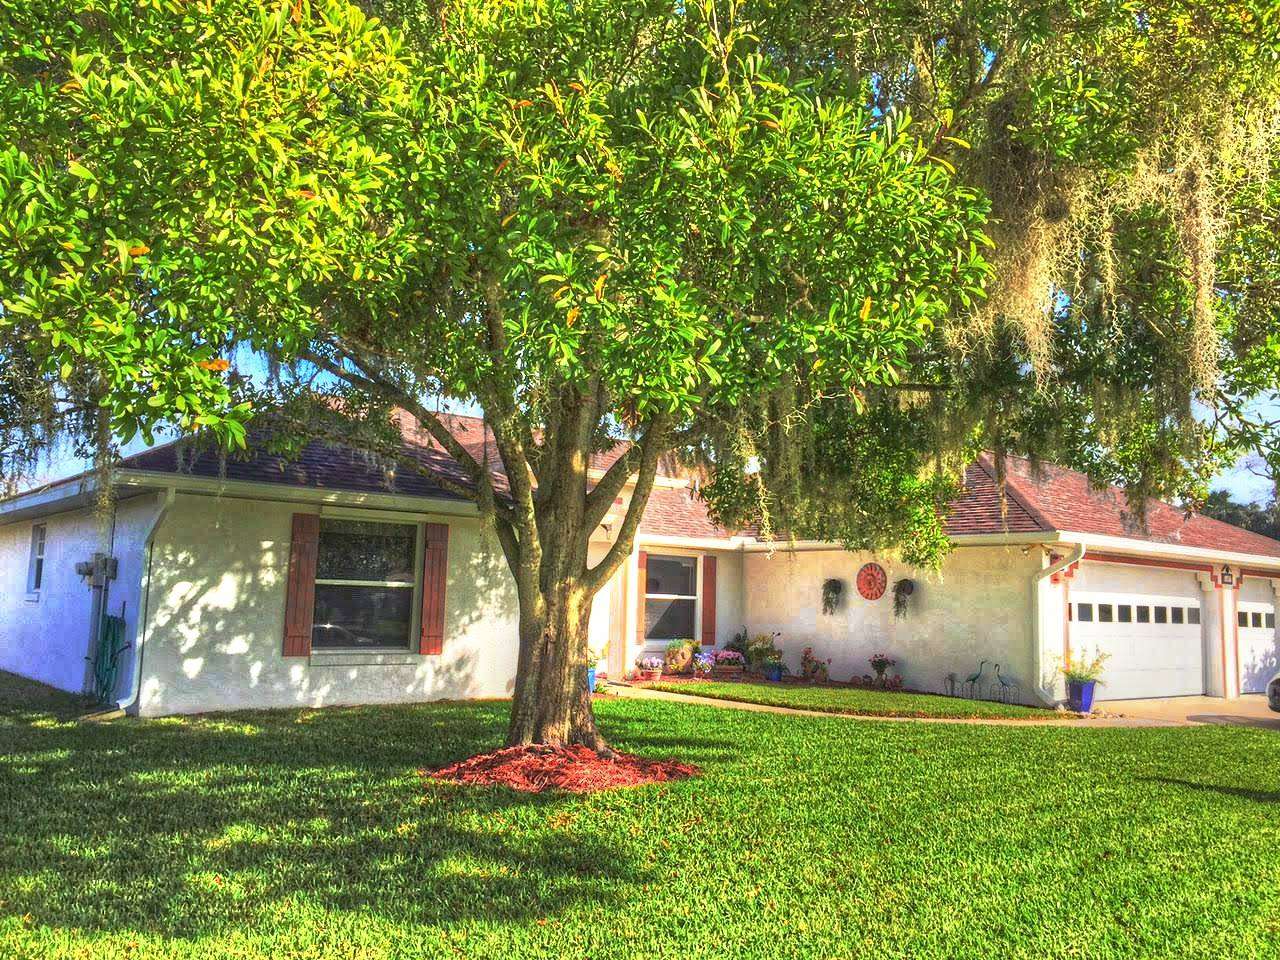 157 Bryan Cave Rd South Daytona FL For Sale Front View